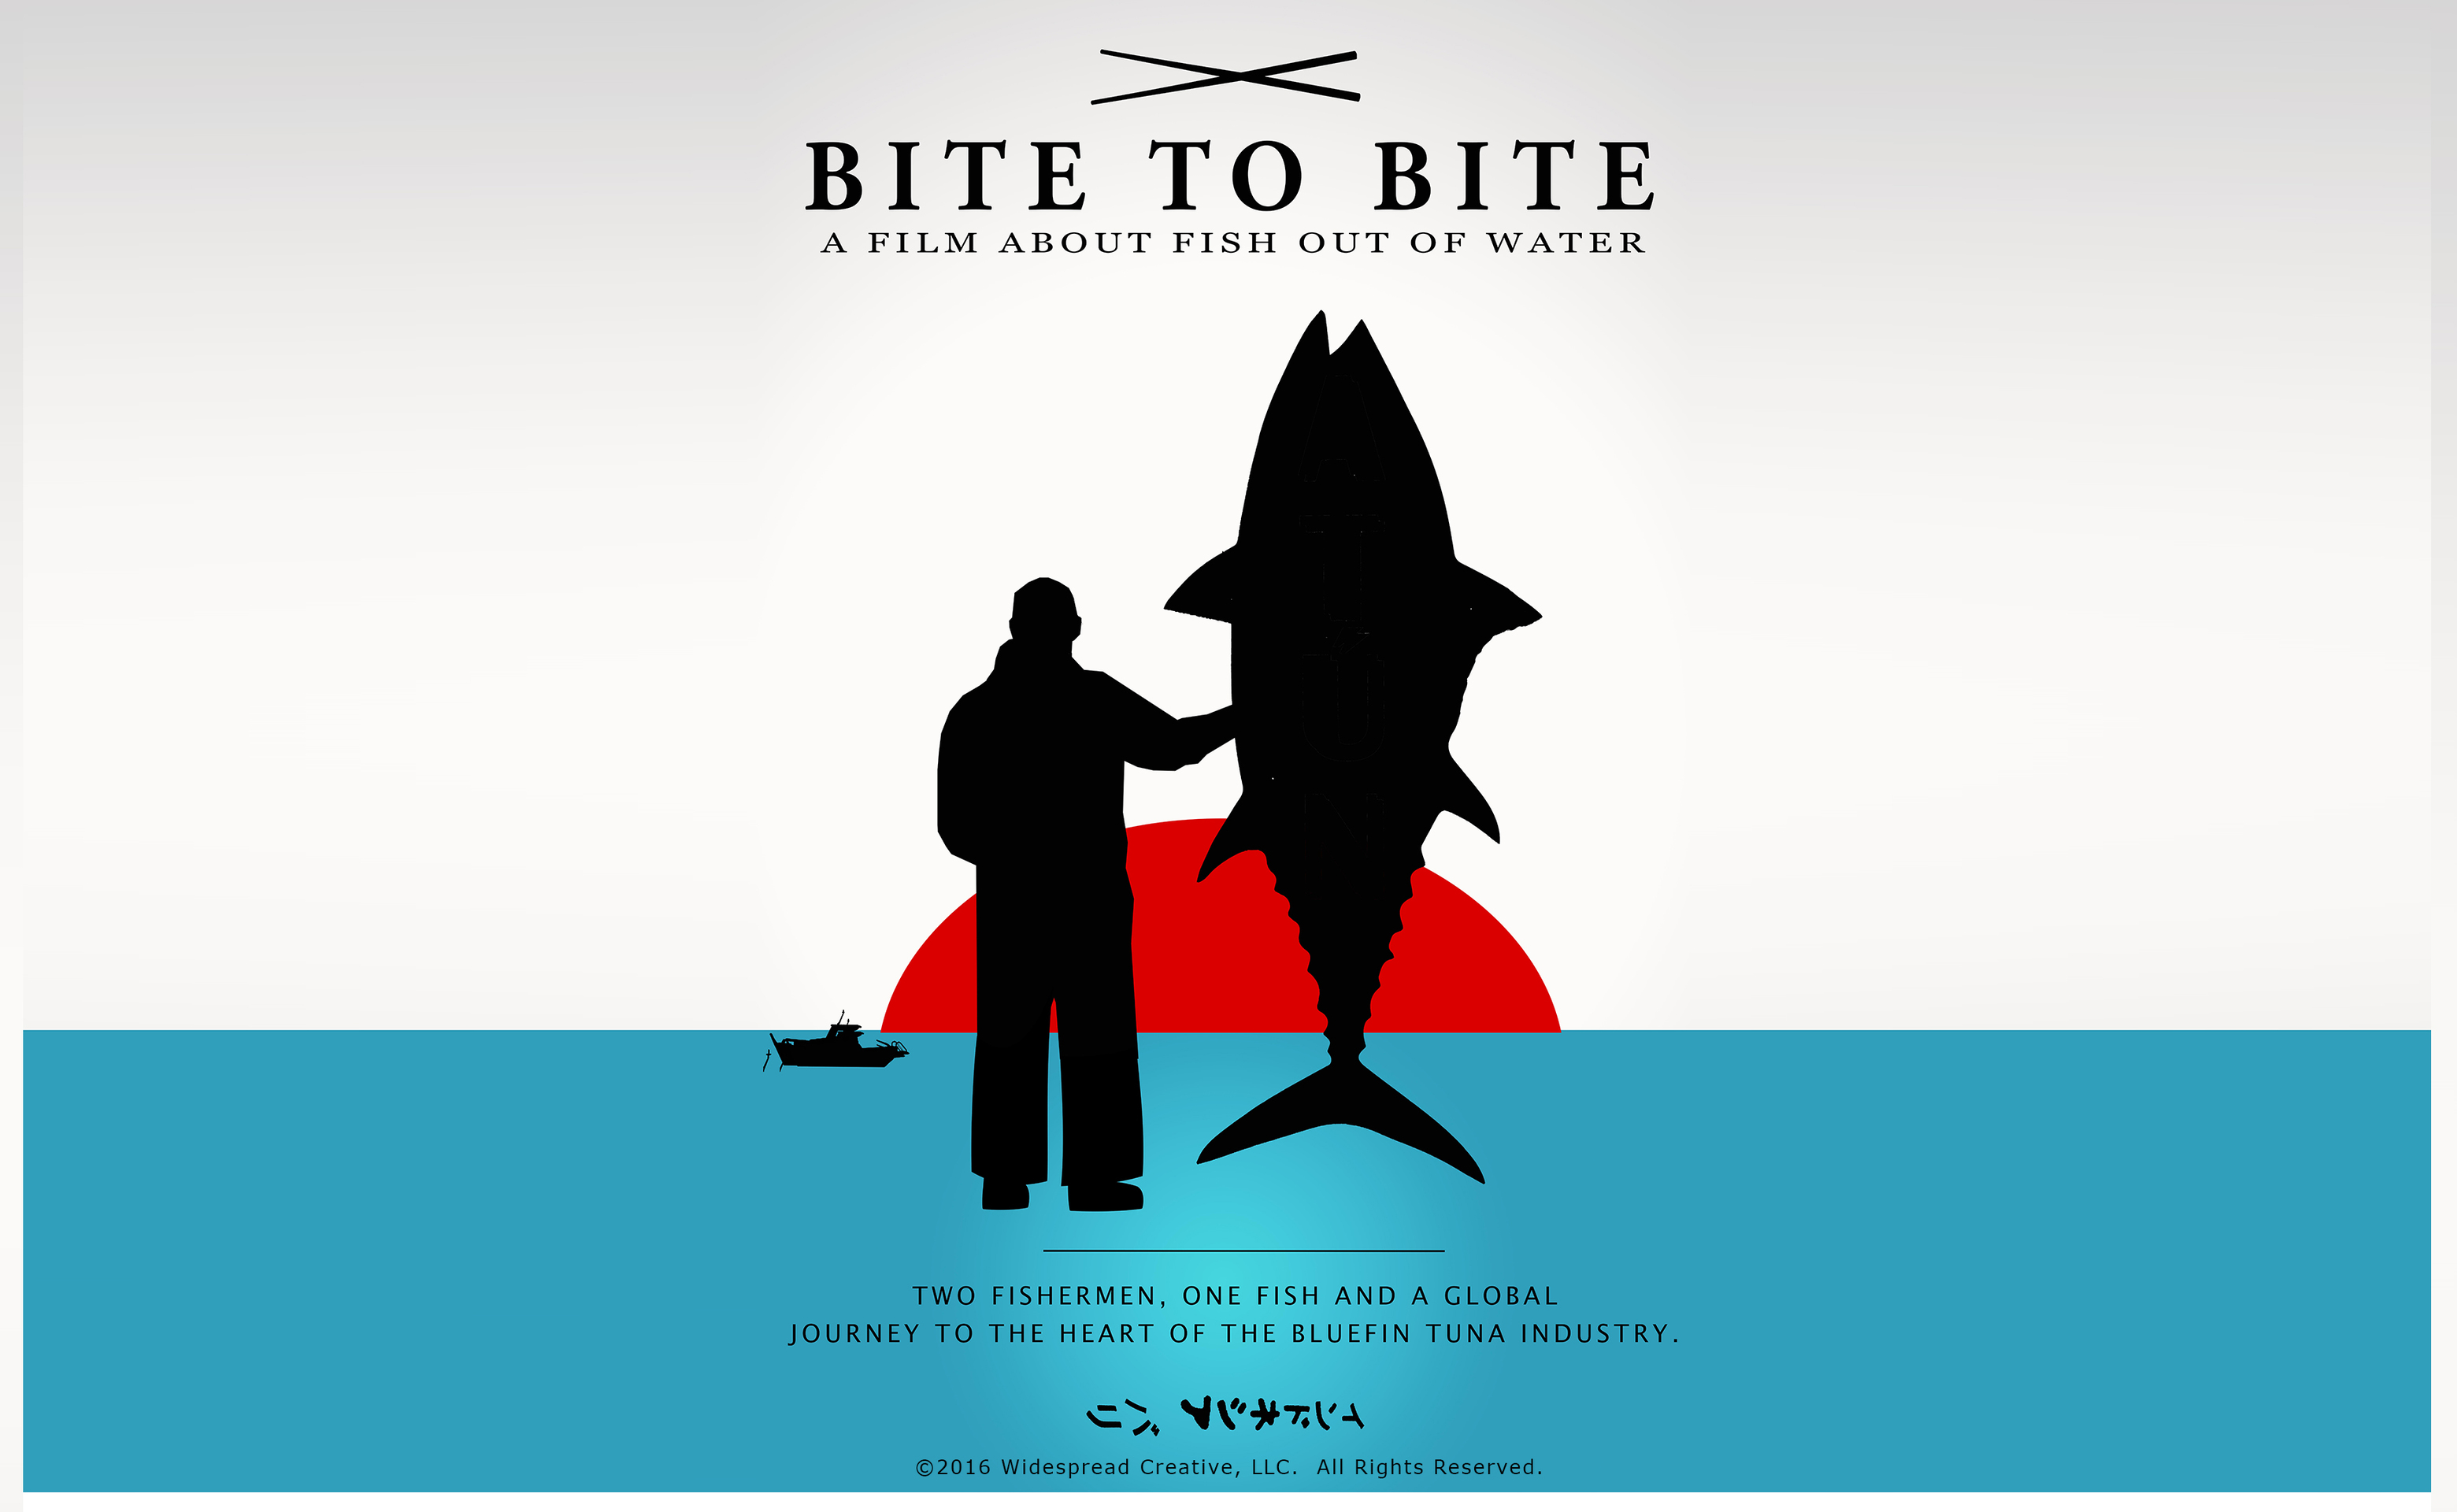 Introducing BITE TO The First Feature In Our New 12 Film Documentary Series